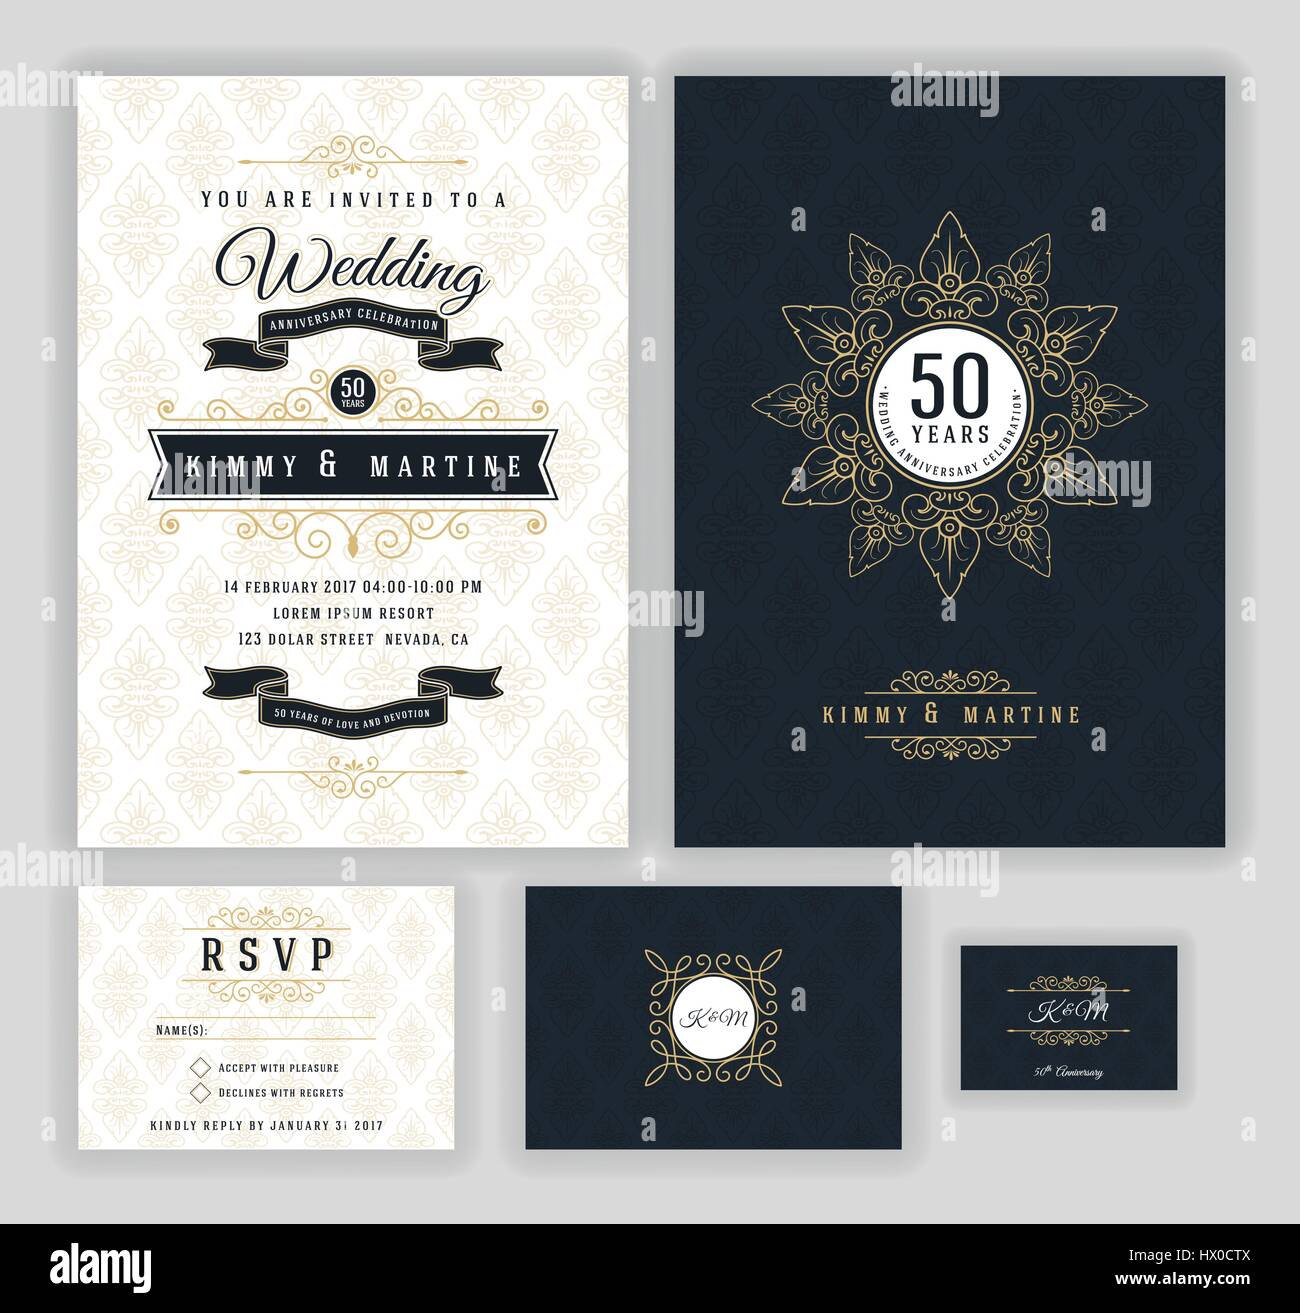 Wedding anniversary celebration party invitation design template wedding anniversary celebration party invitation design template luxury frame elements and background vector illustration stopboris Image collections